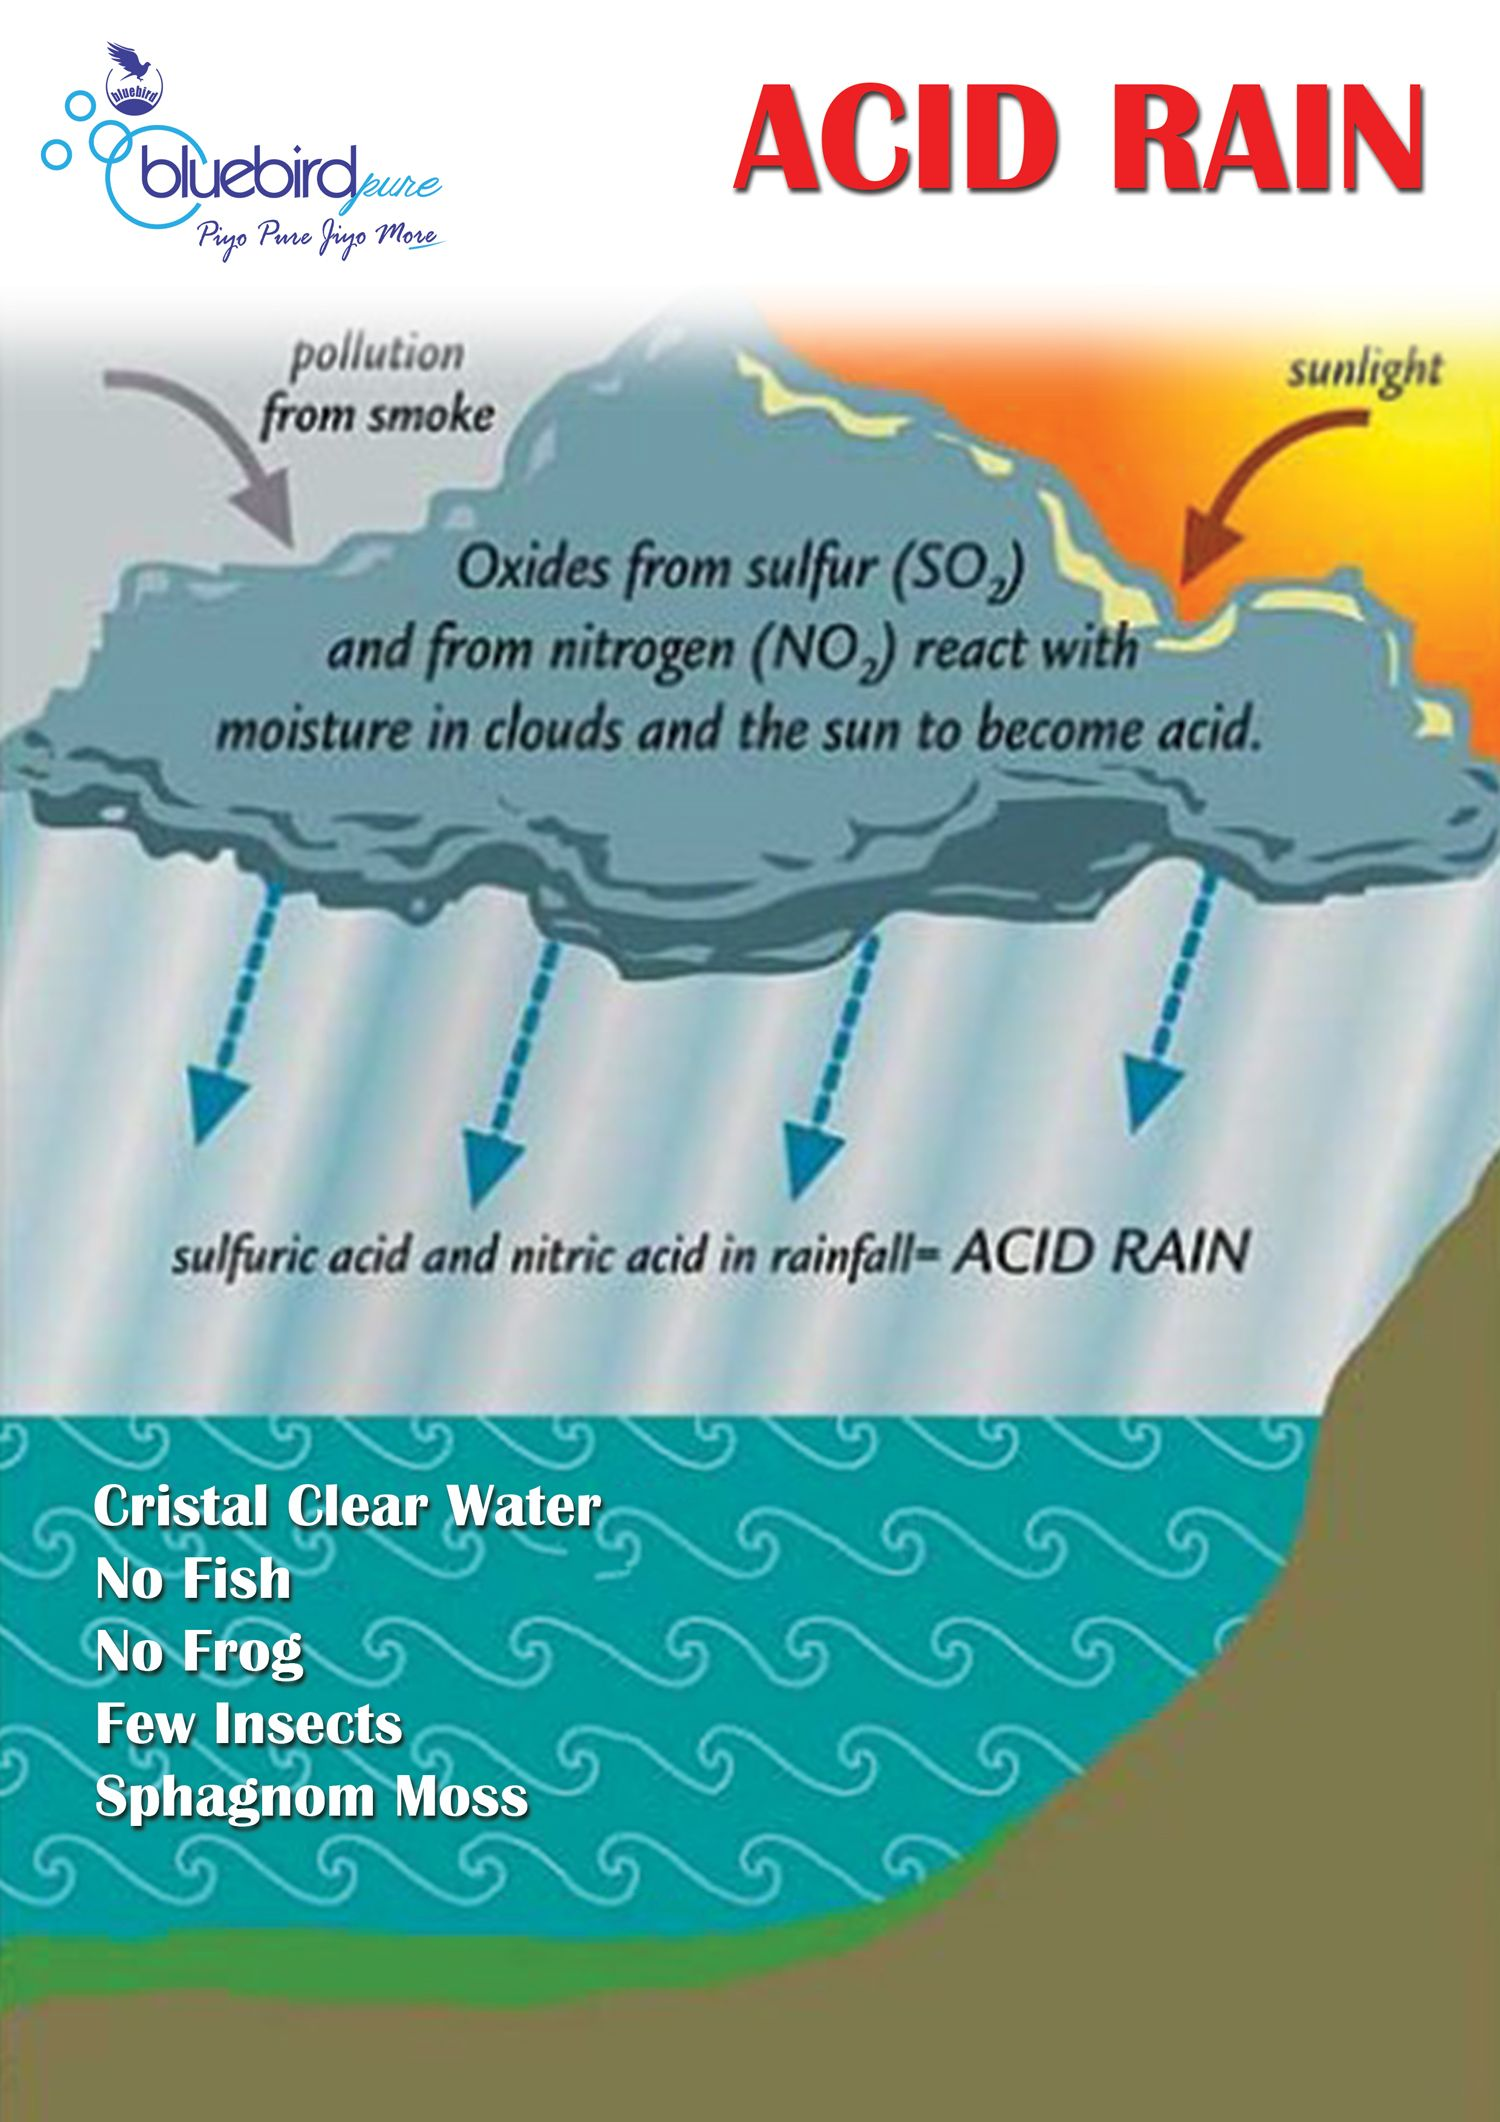 medium resolution of industrial pollution can lower the ph of precipitation creating acid rain this type of precipitation can directly kill some organisms like trees and fish